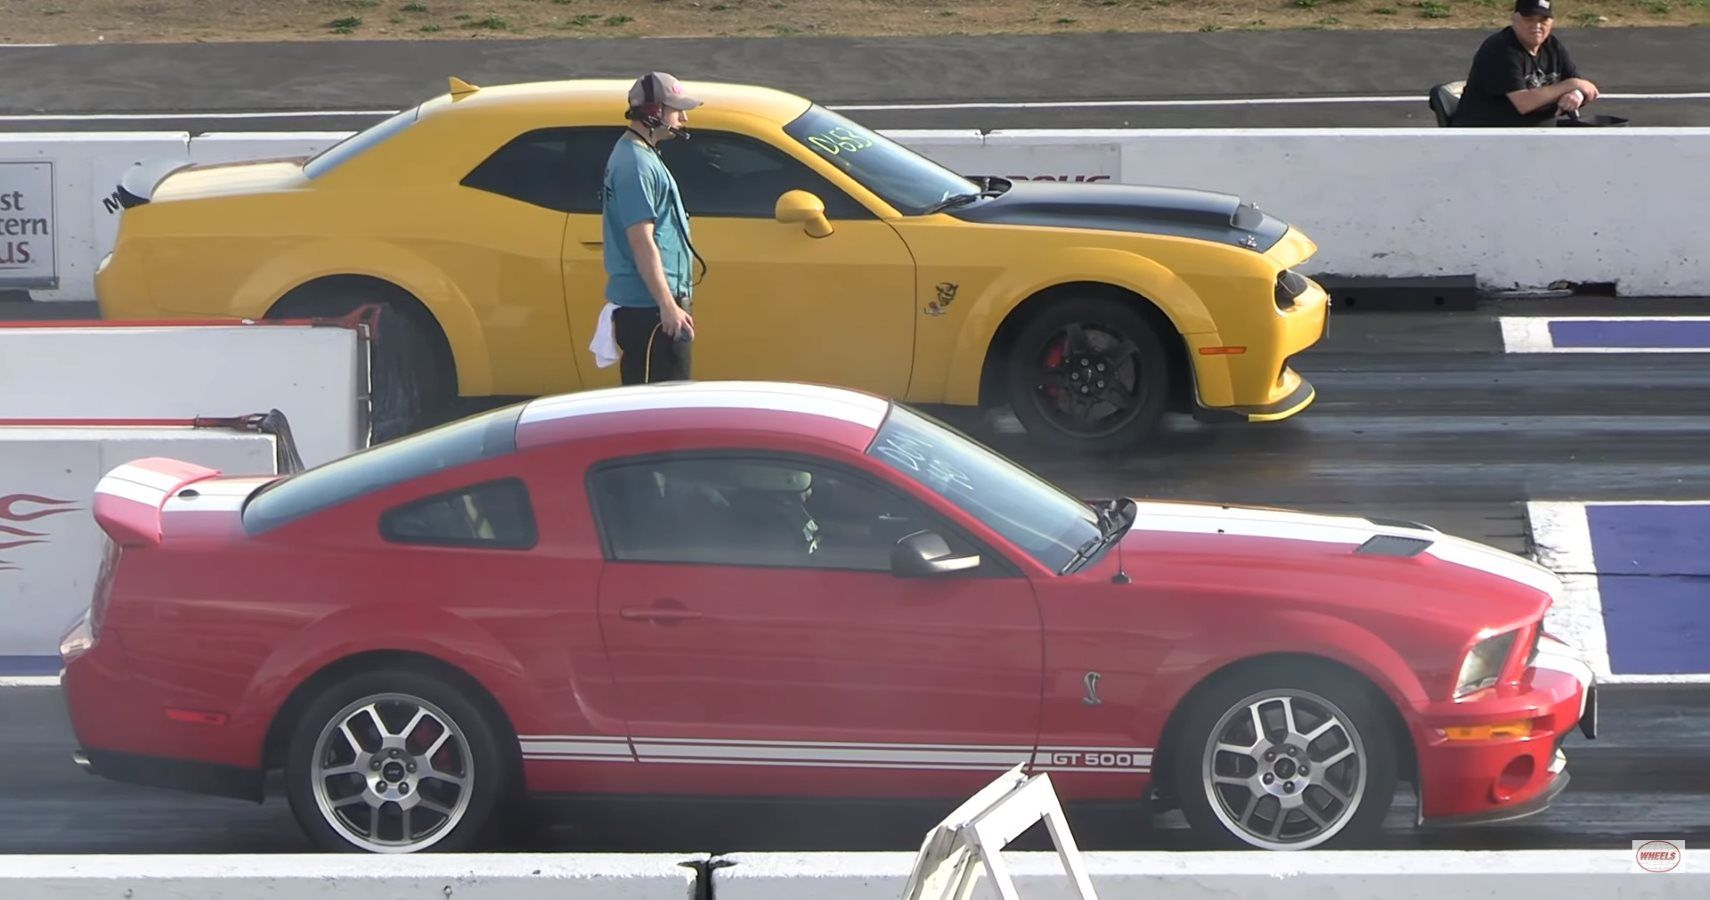 Ford Mustang Shelby Gt500 Vs Dodge Demon - New Cars Review